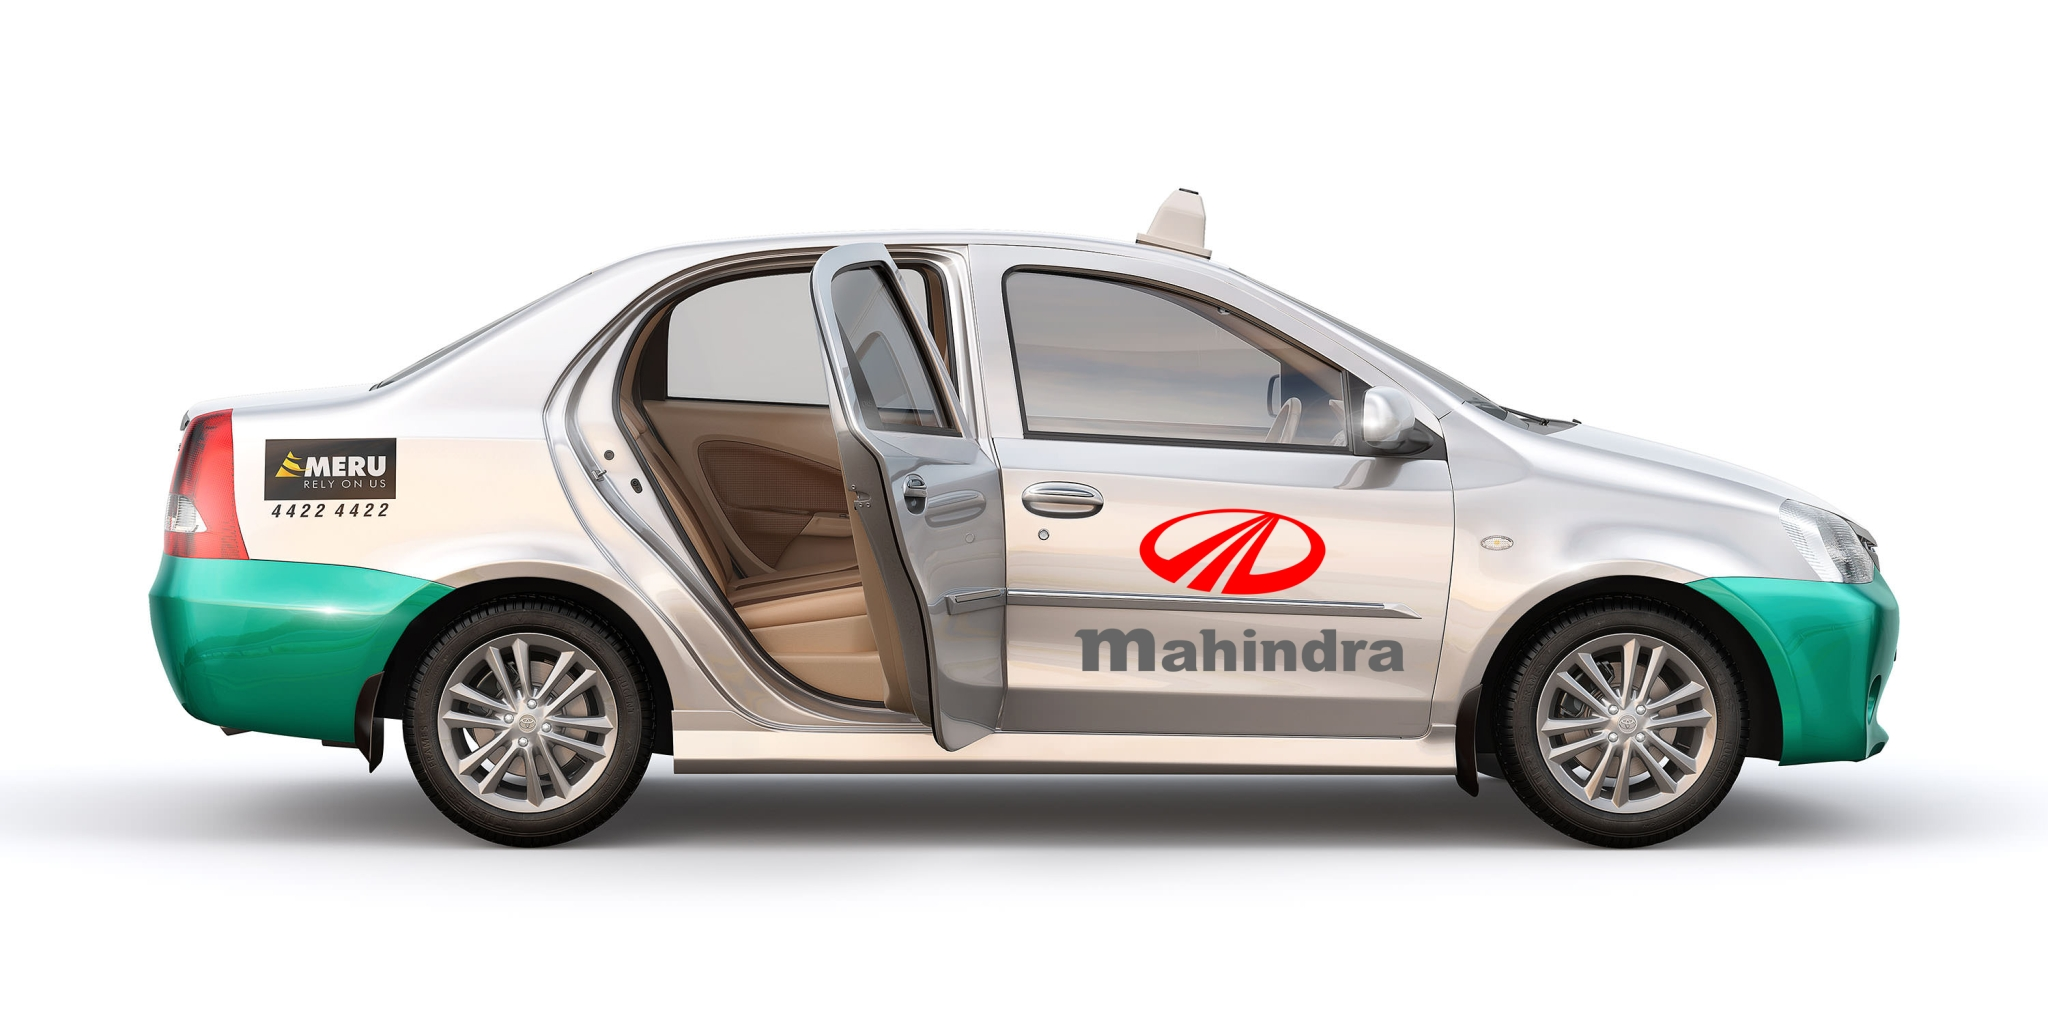 Mahindra Acquires 55% Stake in Meru Cabs to Take on Ola & Uber